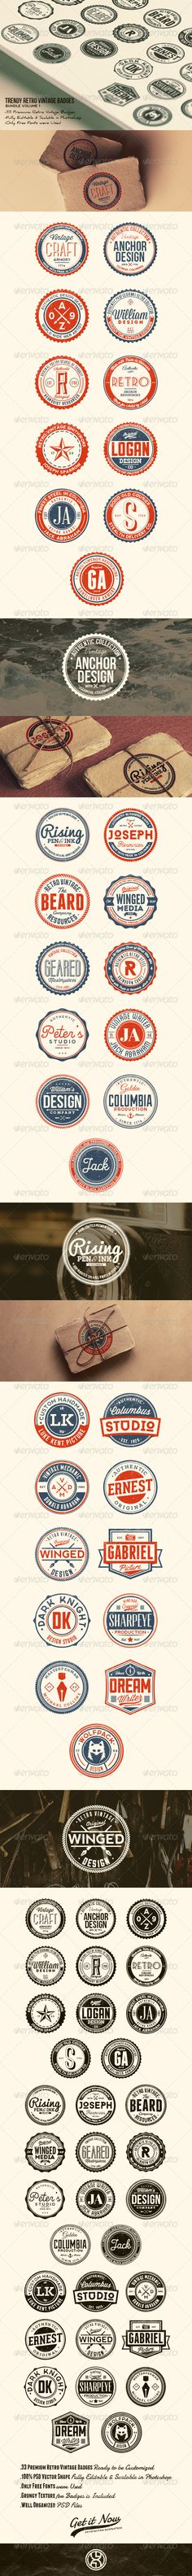 33 Trendy Retro Vintage Badges Bundle Volume 1 - Badges & Stickers Web Elements